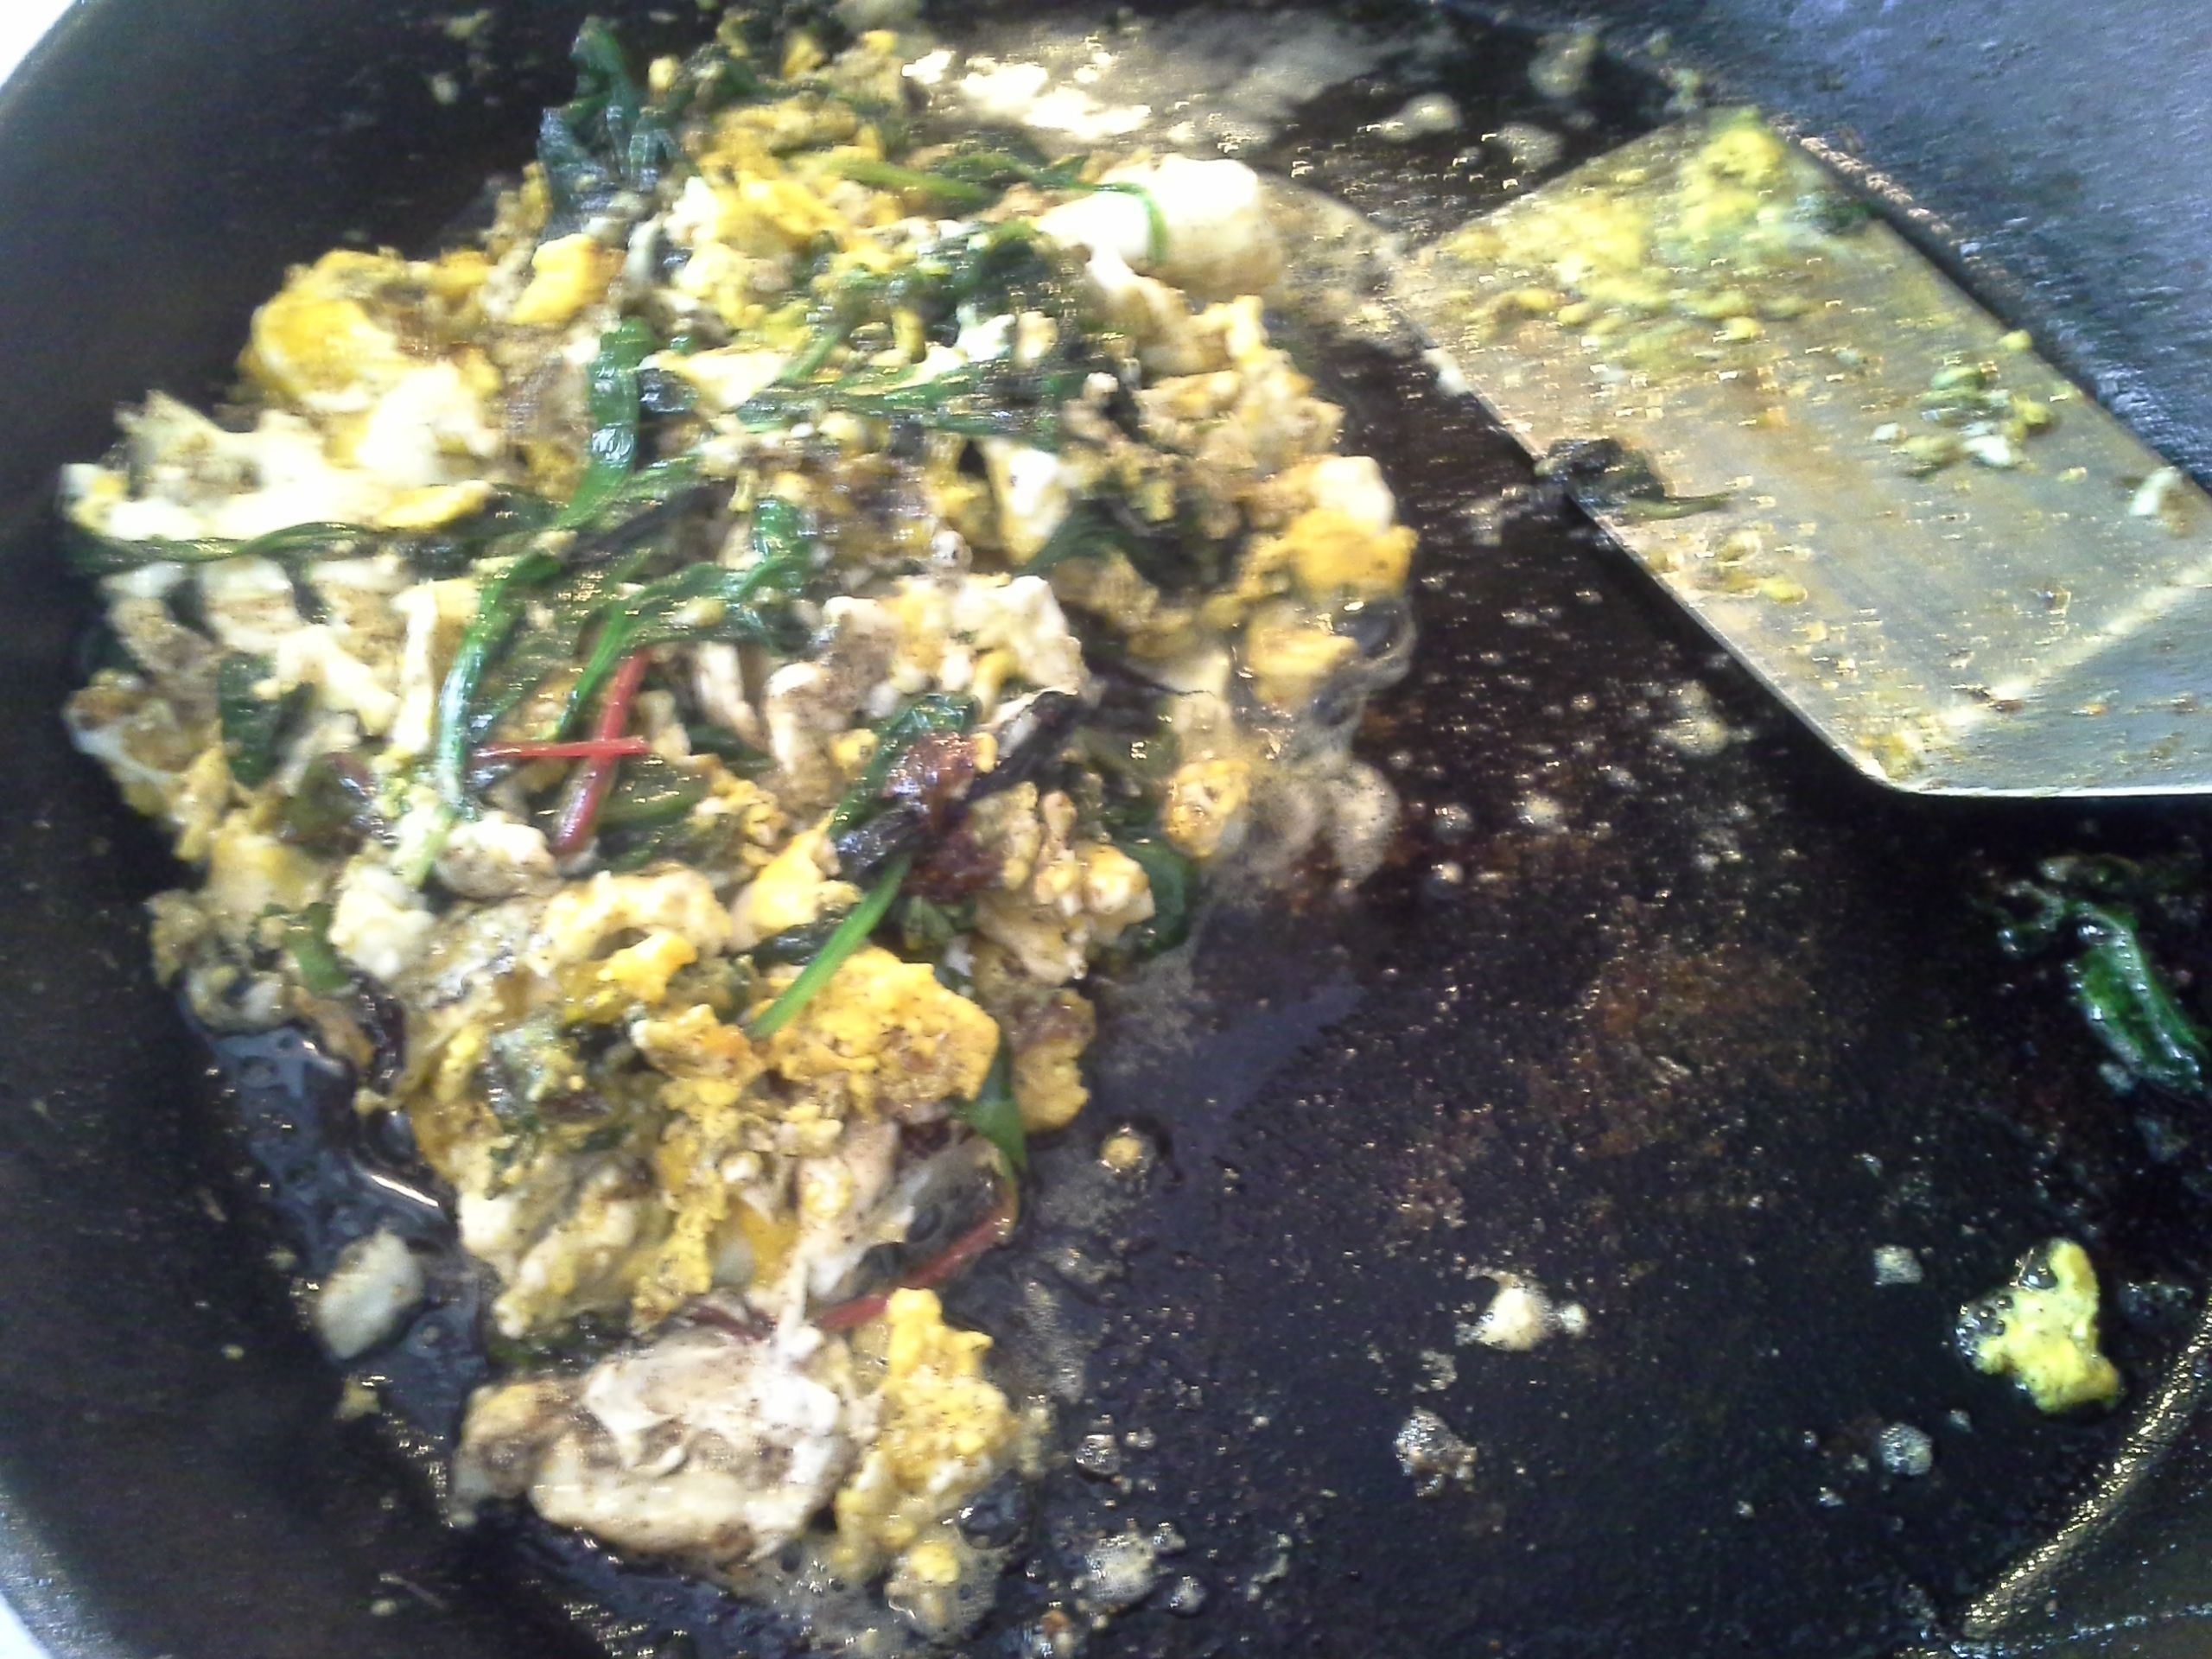 Breakfast: 11:10 a.m. | 4 eggs, greens mix, 2 Tbsp. coconut oil, herbs & spices